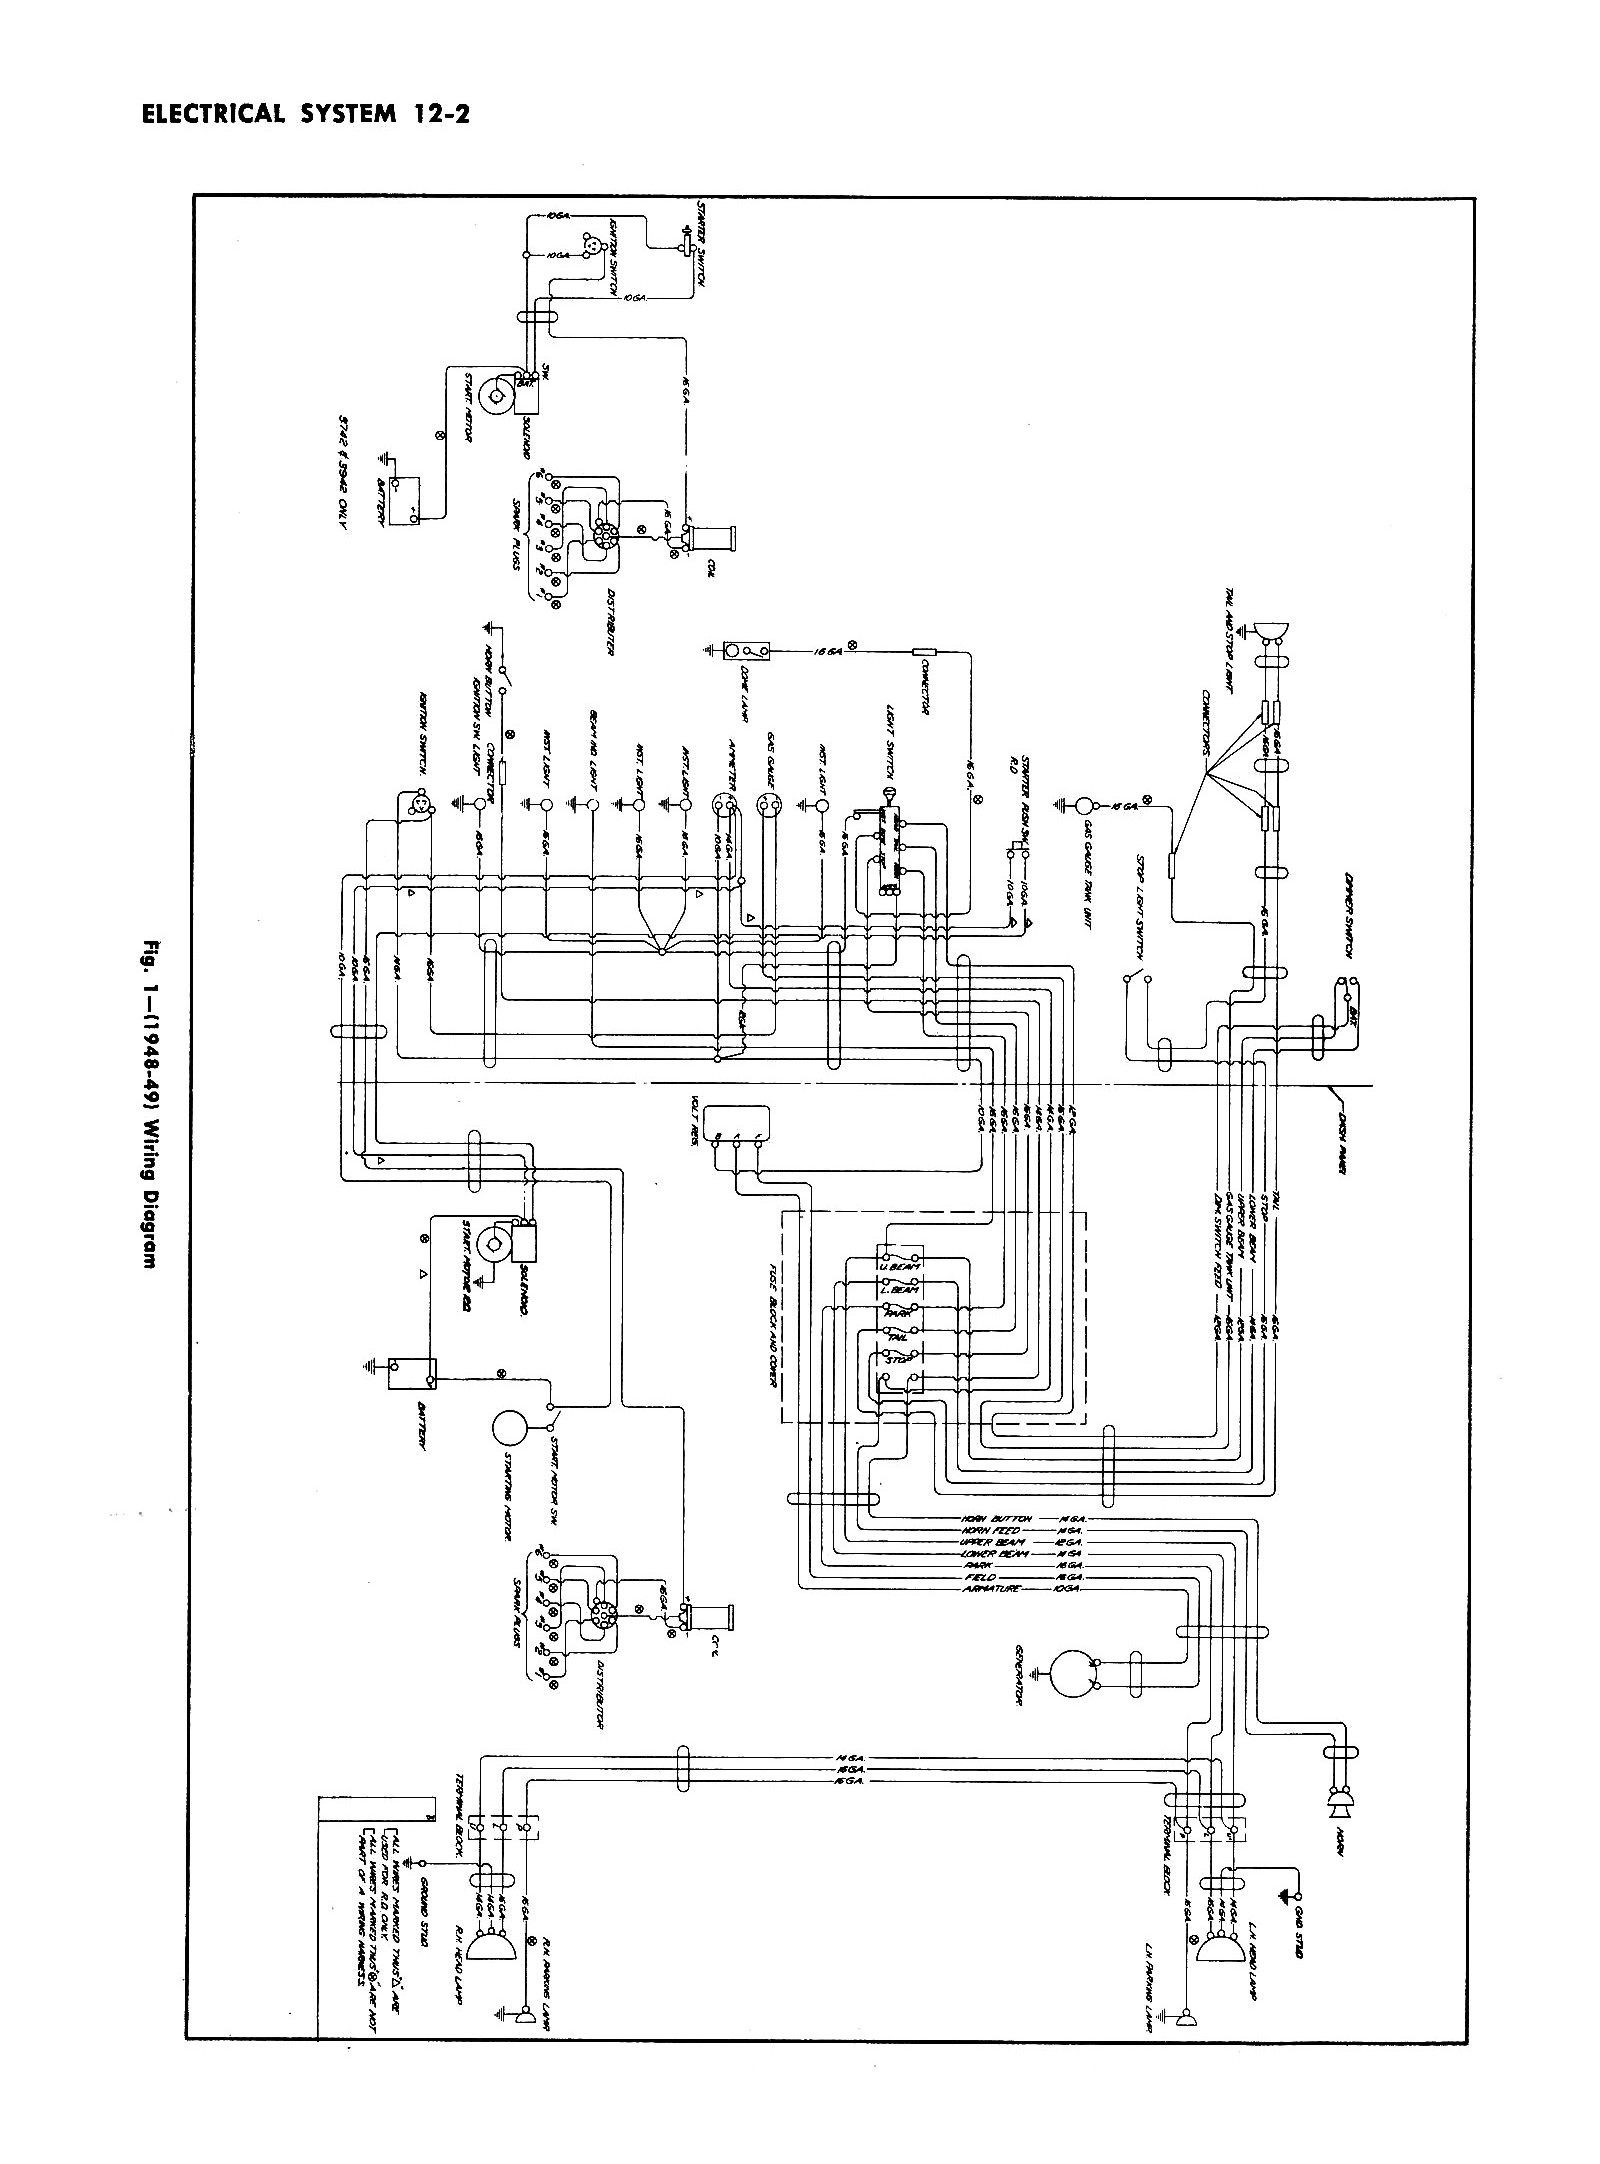 hight resolution of 1954 chevy wiring diagram simple wiring schema 1935 ford wiring diagram 1952 chevy wiring diagram